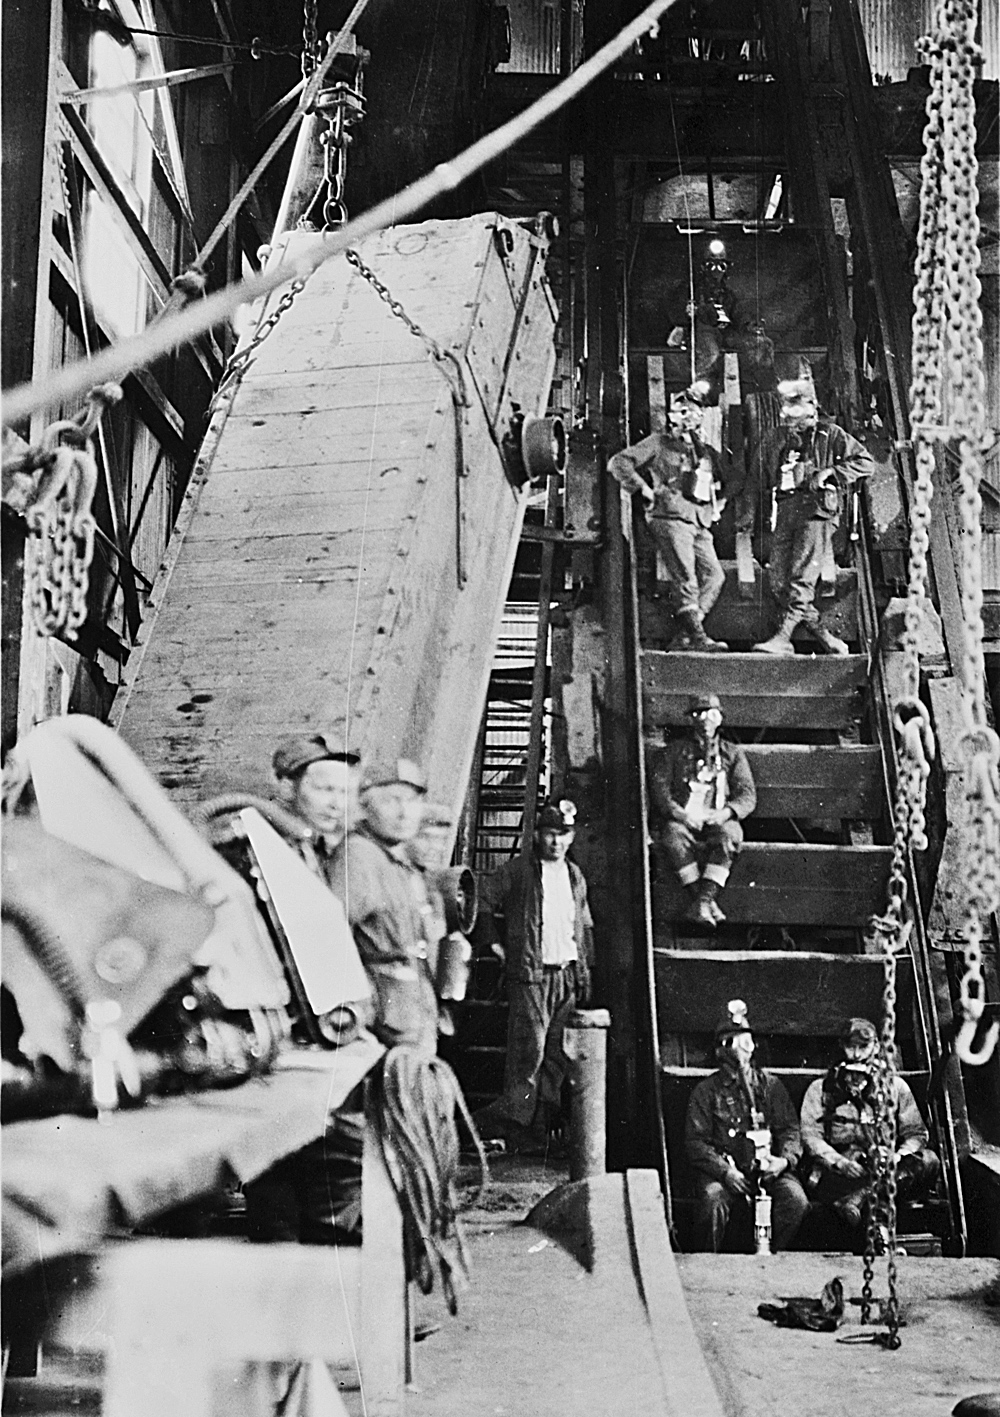 Inside the Quincy No.2 Shaft / Rockhouse In Operation